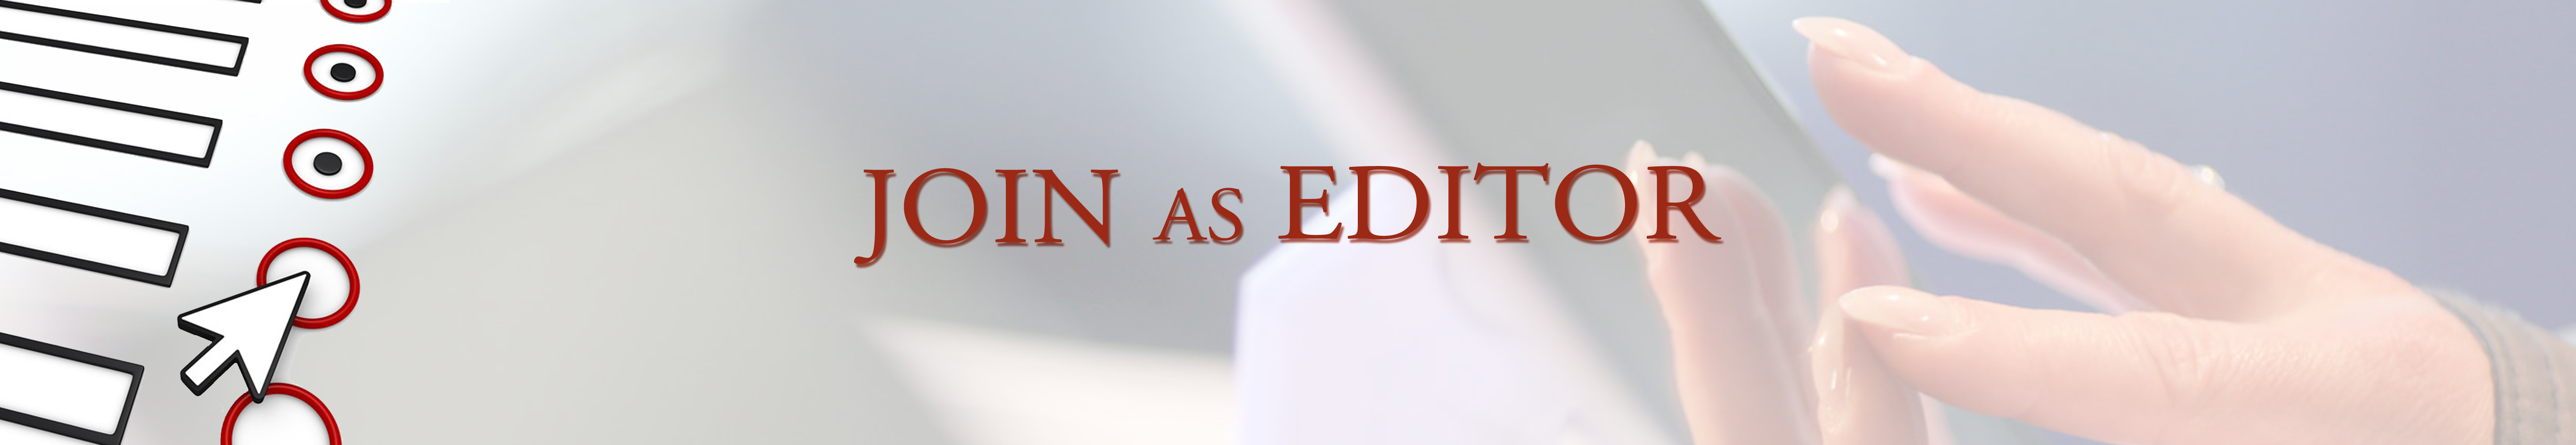 Join as Editor